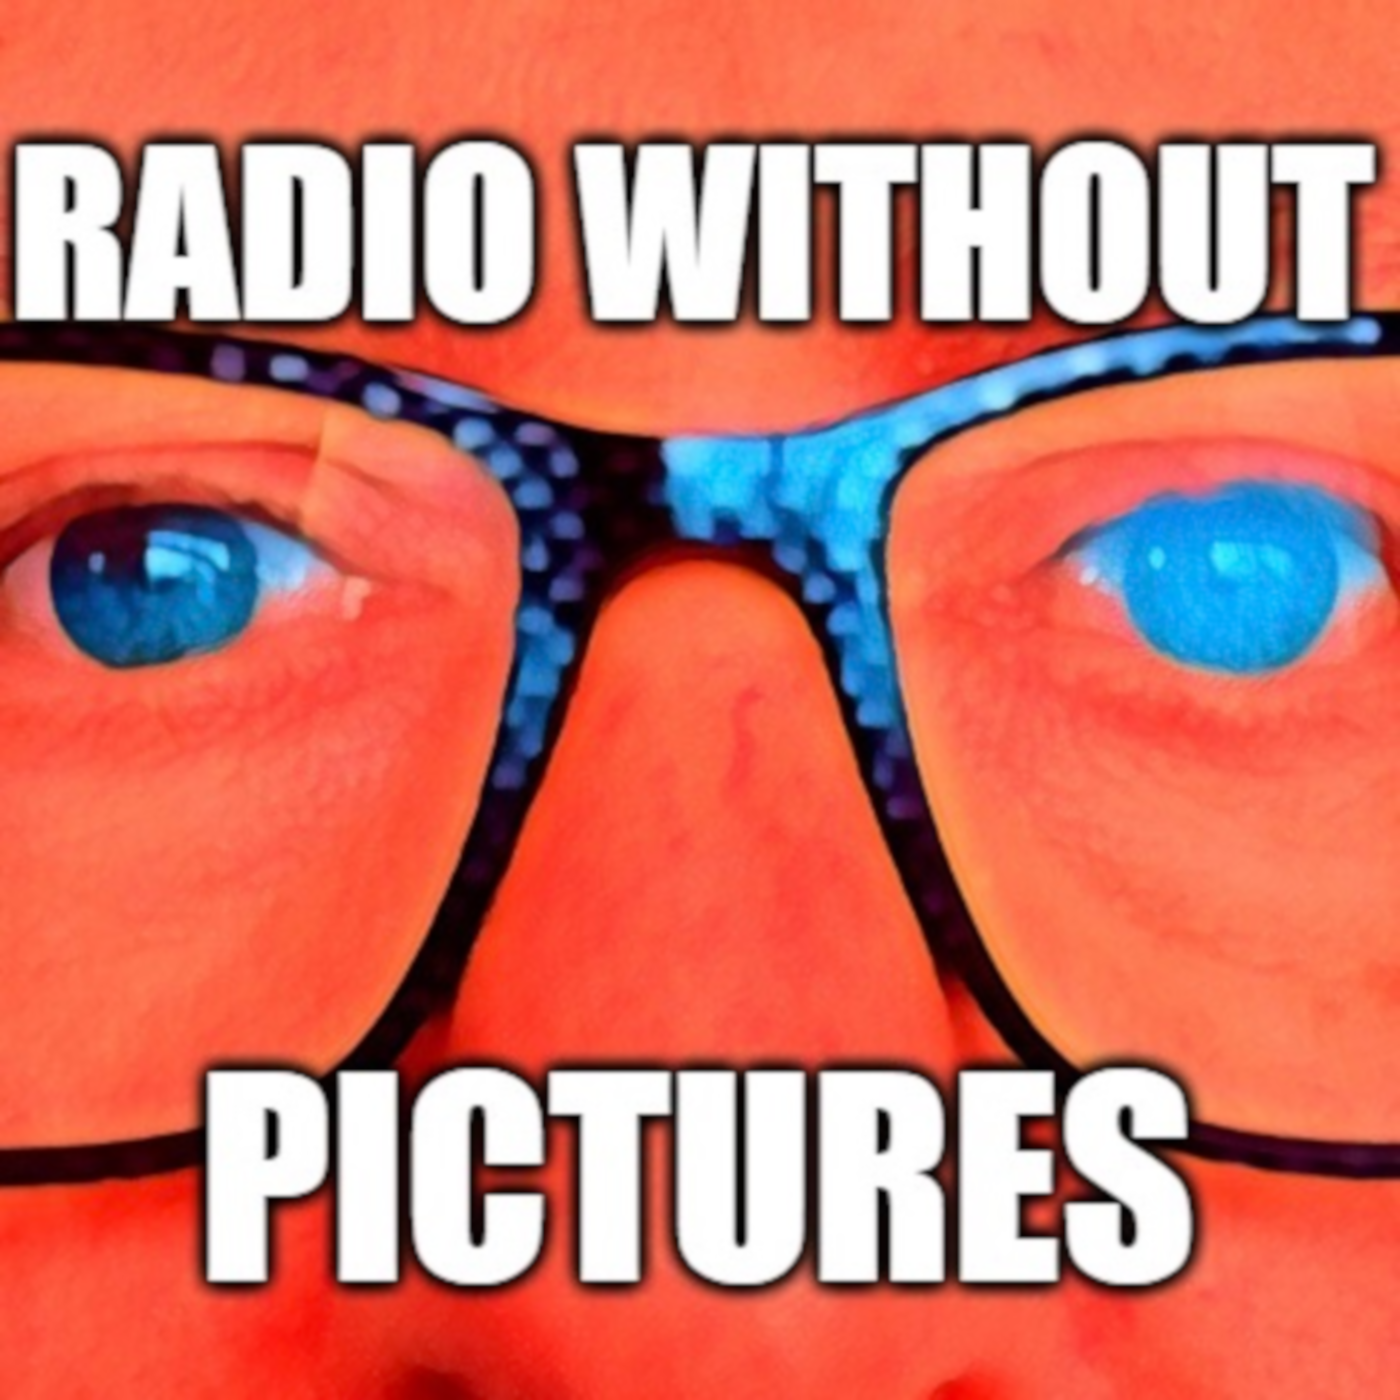 https://static.accessradio.org/StationFolder/radiosouthland/Images/RWP2018.png